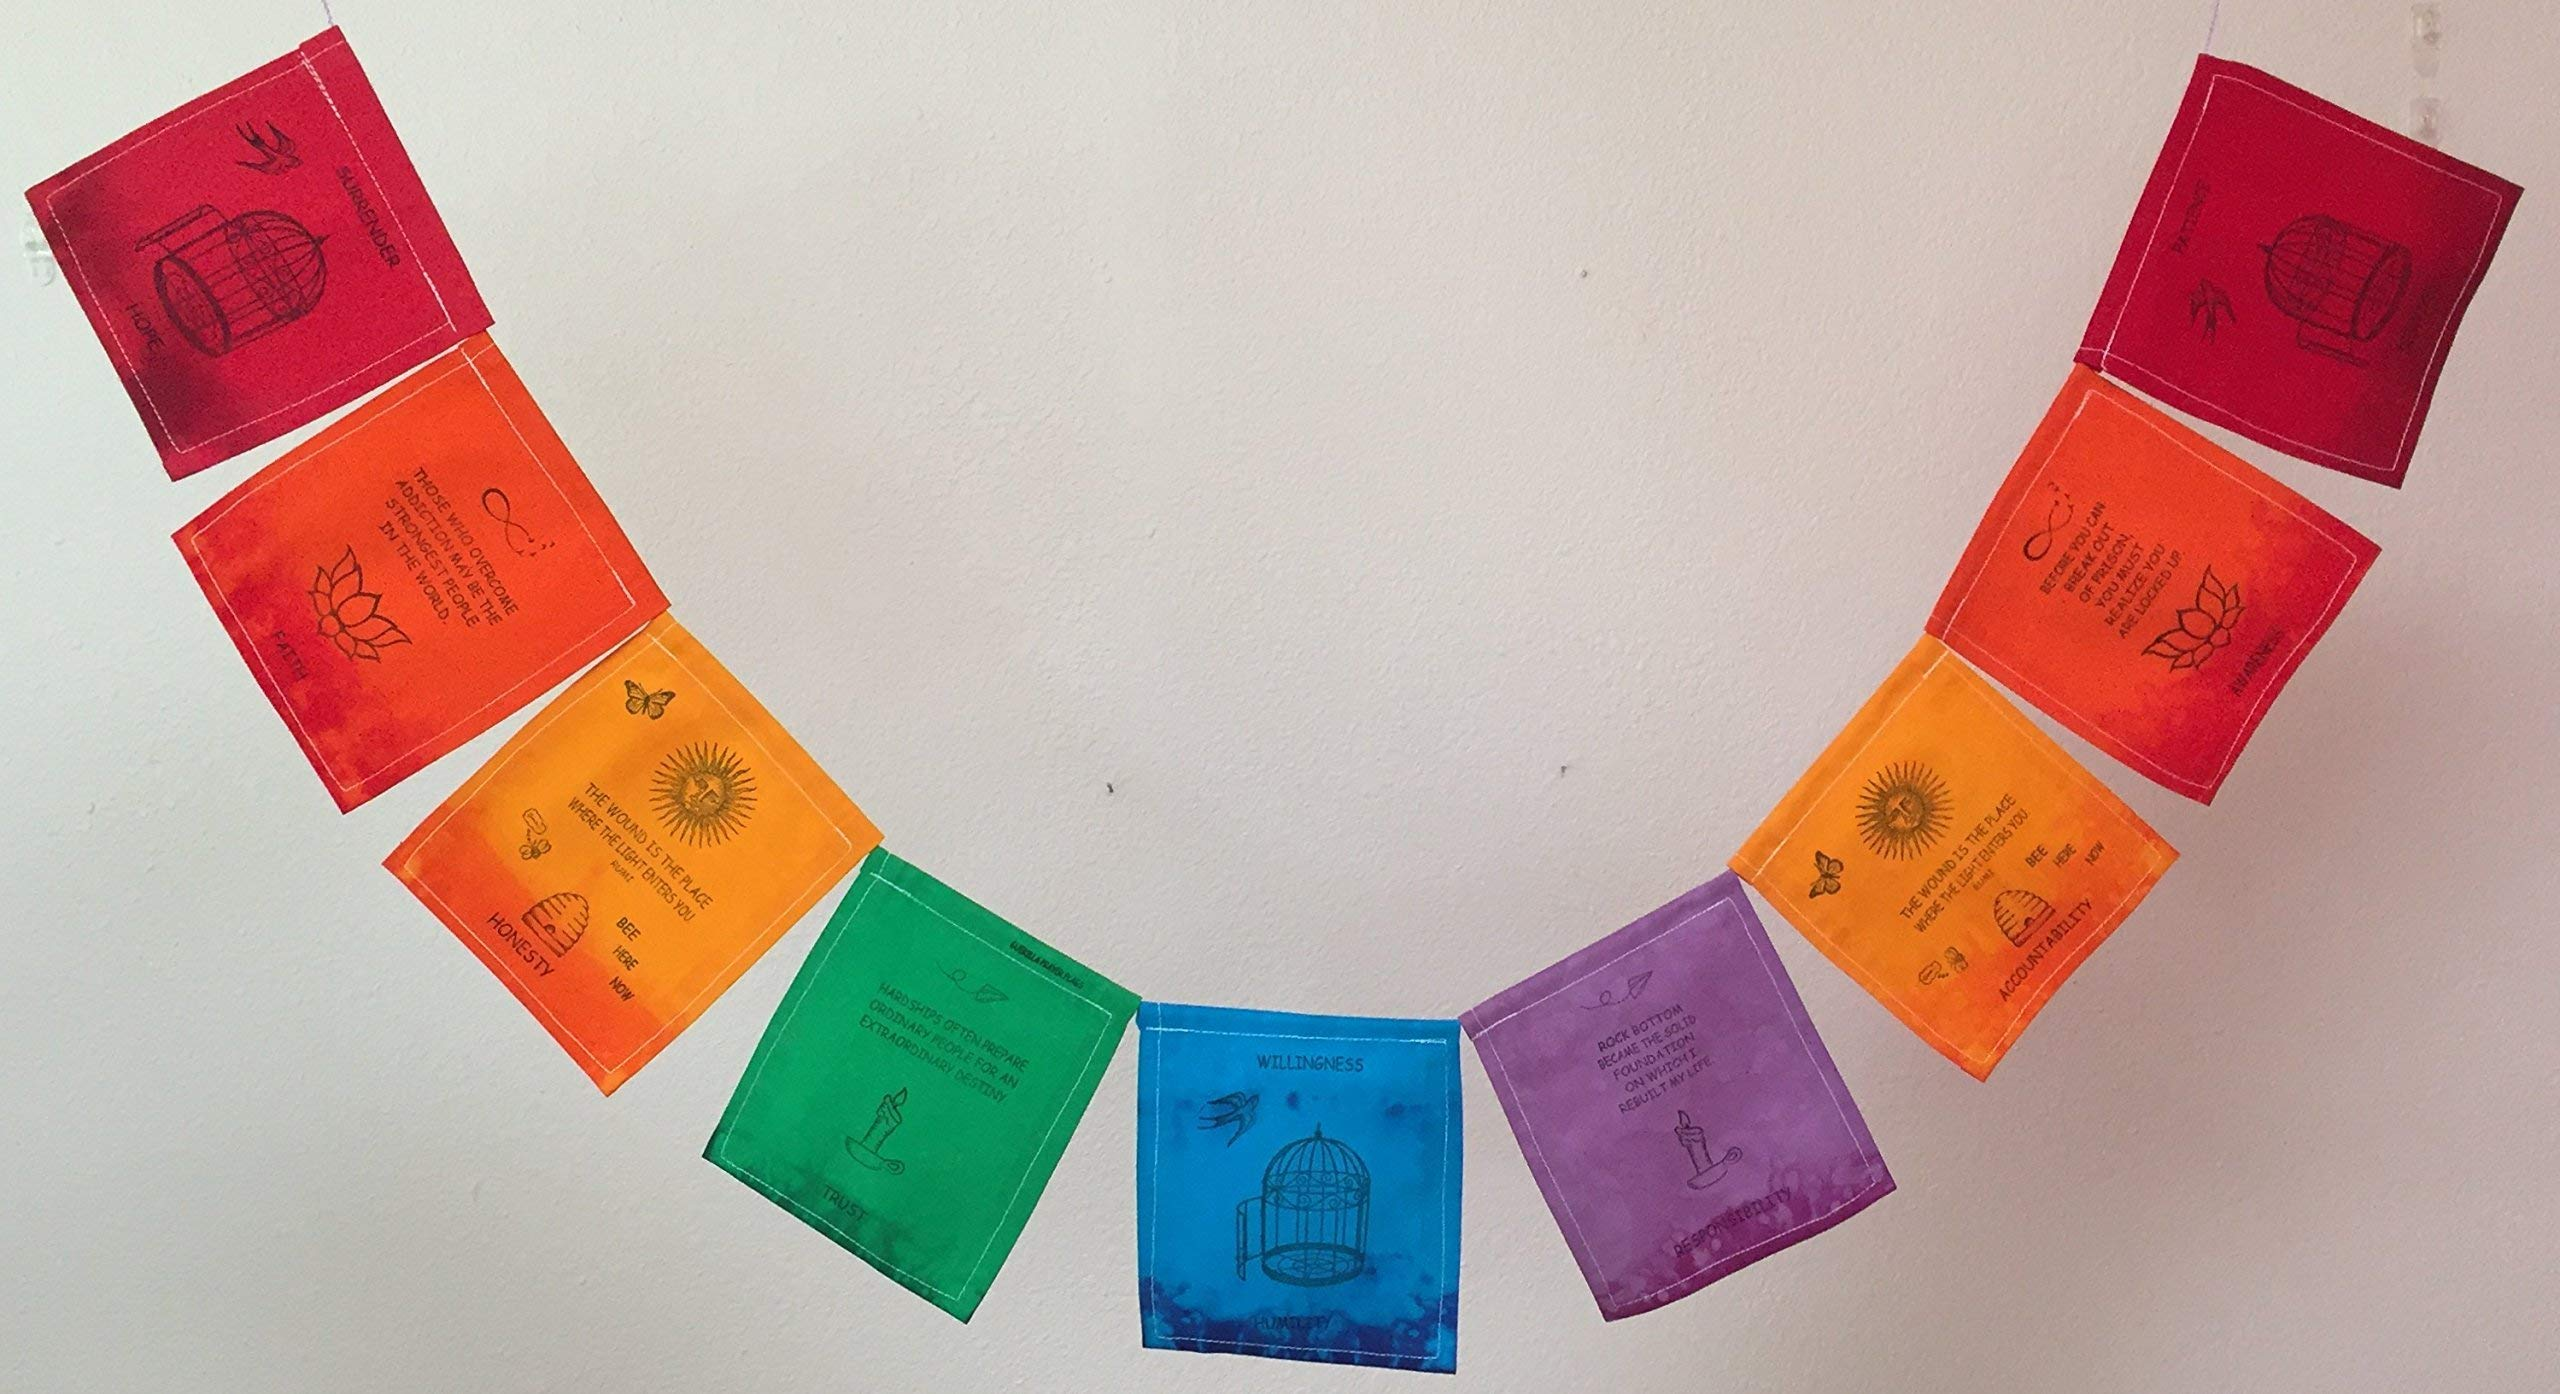 Overcoming Addictions Prayer Flag. All proceeds to families in Mexico.